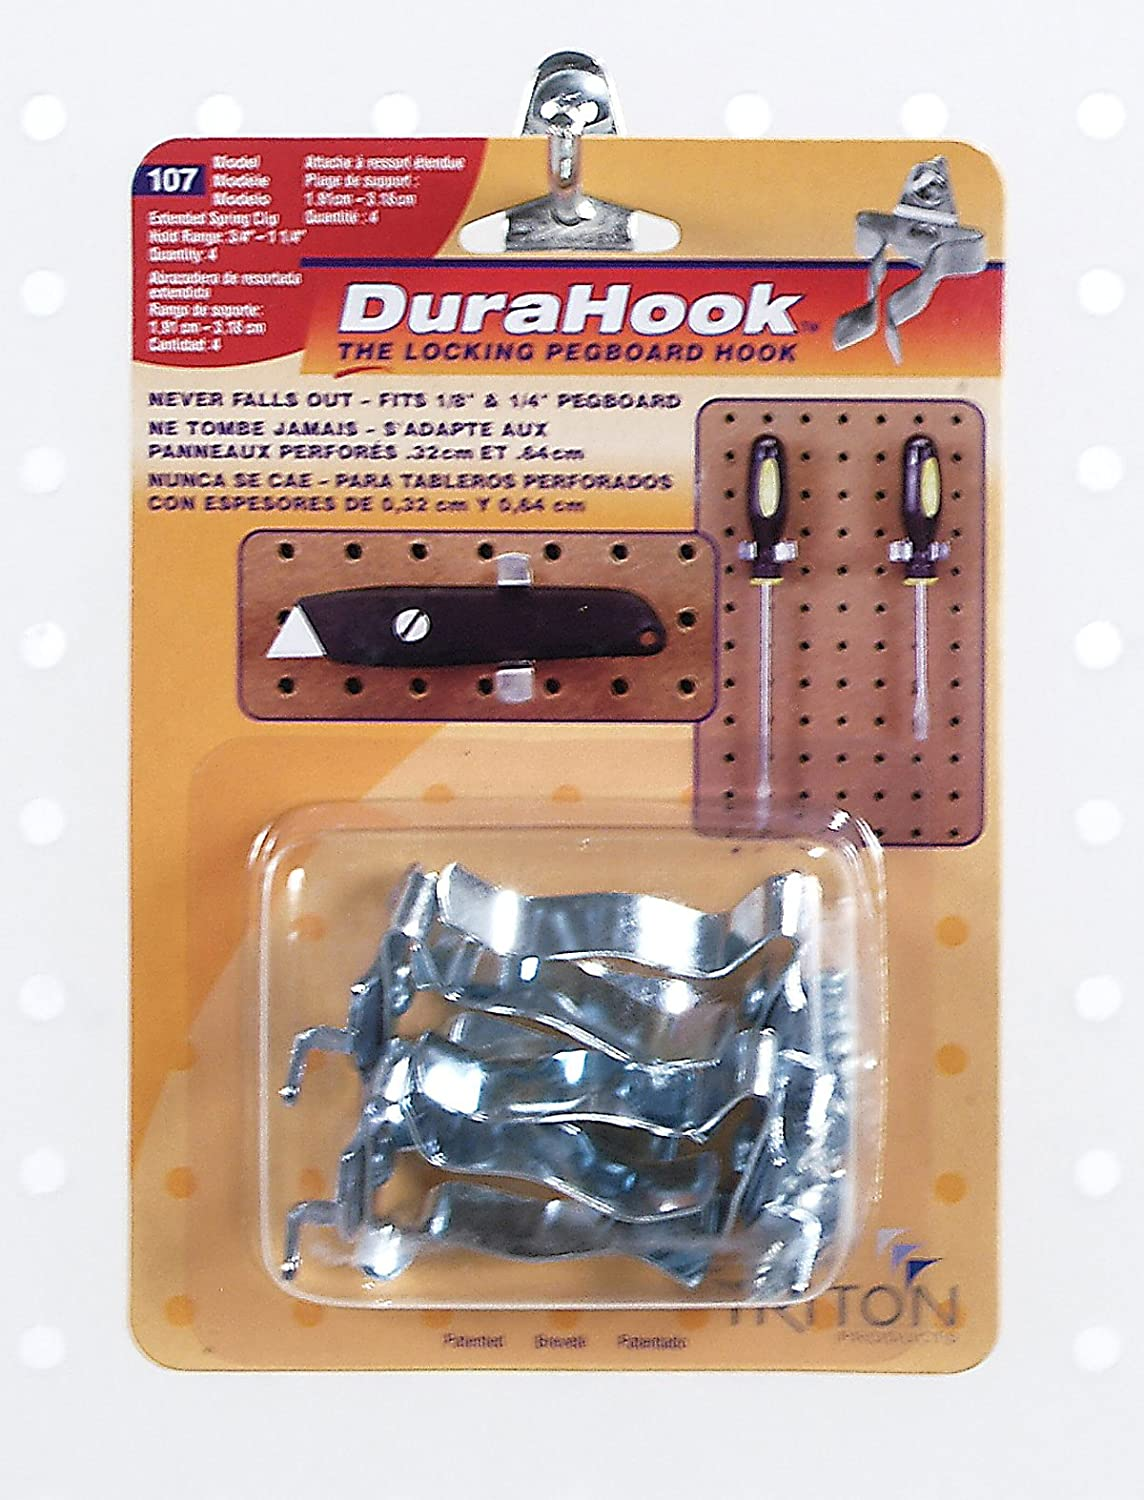 Triton Products 3 4 In. to 1 1 4 In. Hold Range Zinc Plated Chromate Dipped Steel Extended Spring Clip for DuraBoard or 1 8 In. and 1 4 In. Pegboard 3 Pack